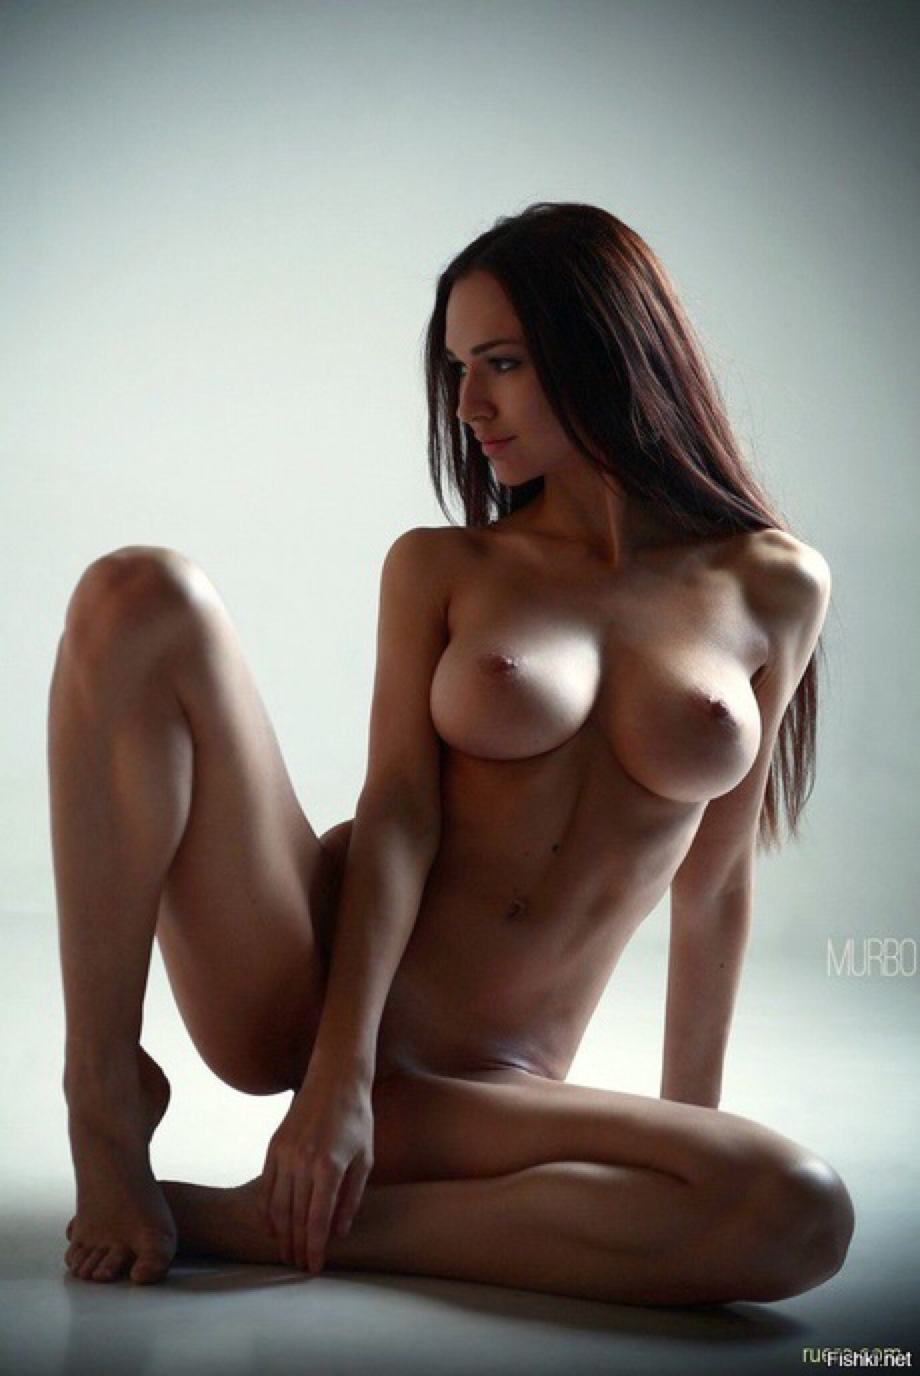 x art angelica in good night kiss art pictures and videos #Lovely #Natural #Beauty #IvetaB